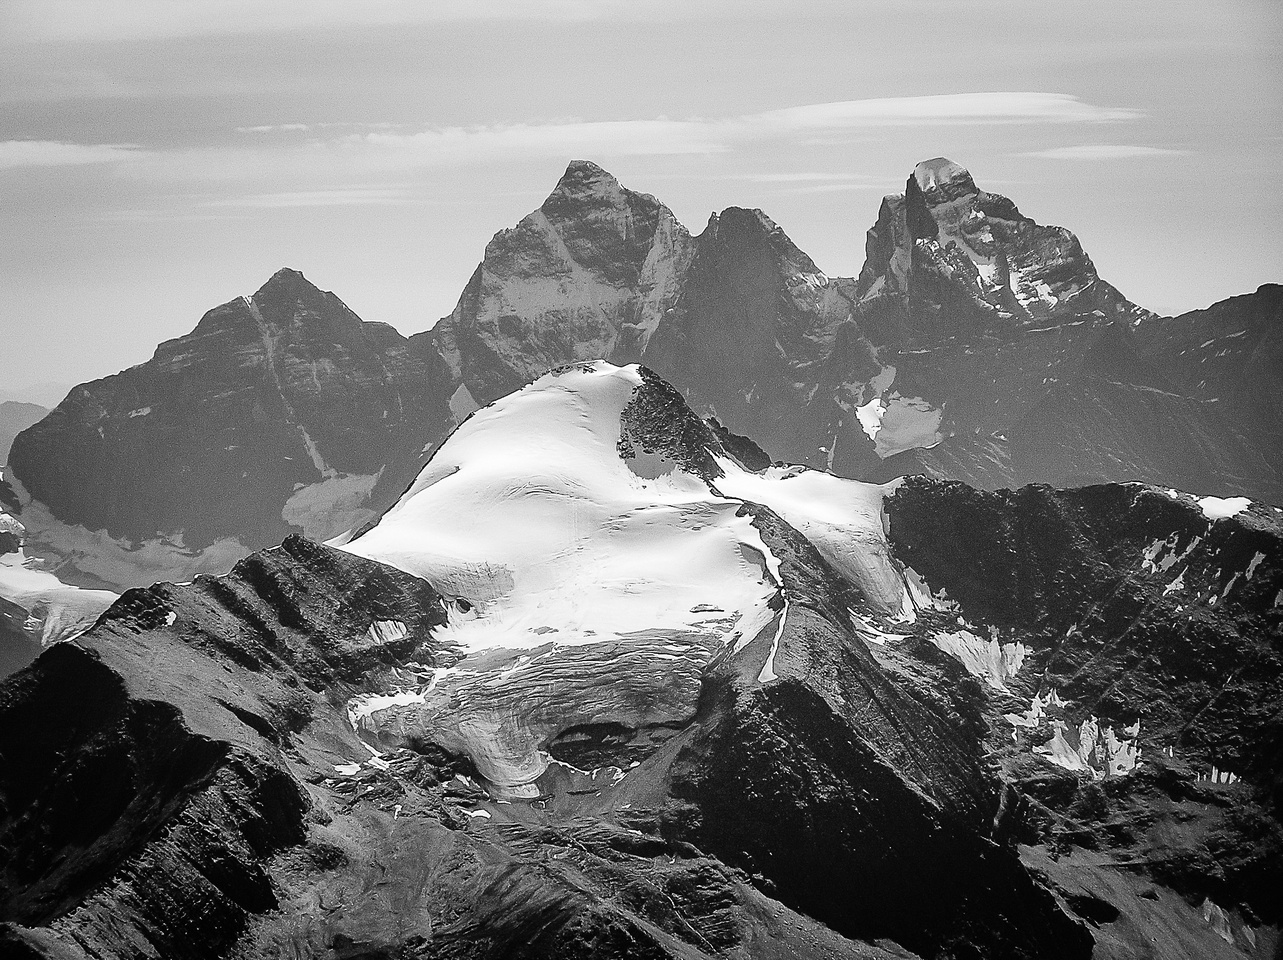 L to R, Sentry, Goodsir South, Center, North with Mount Owen in the fg.